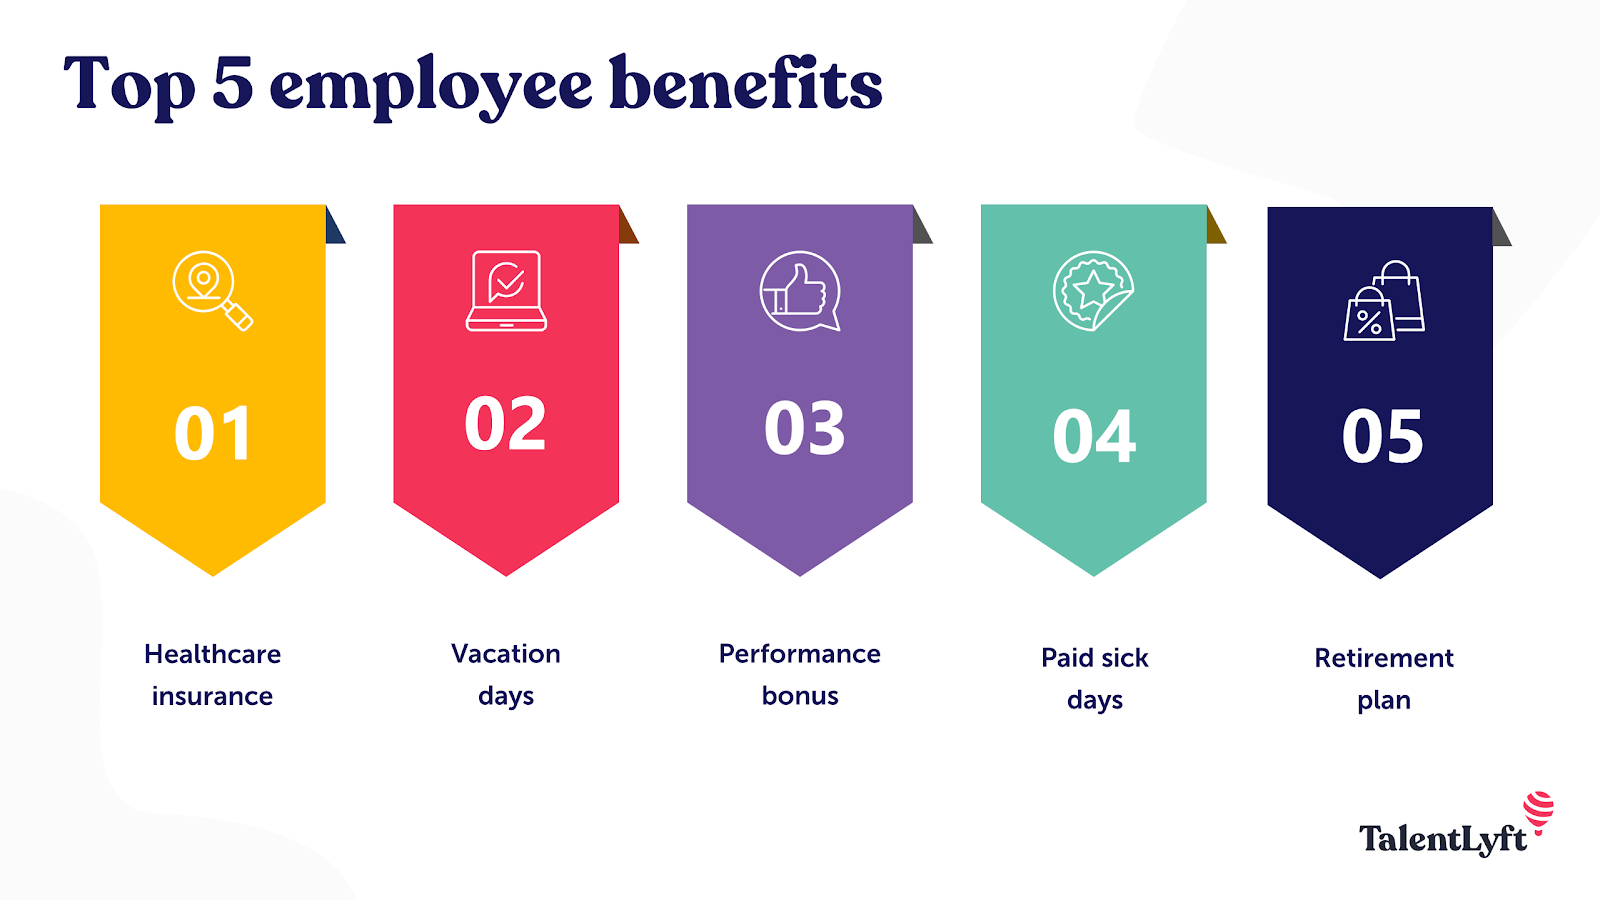 Top 5 employee benefits to attract and retain employees